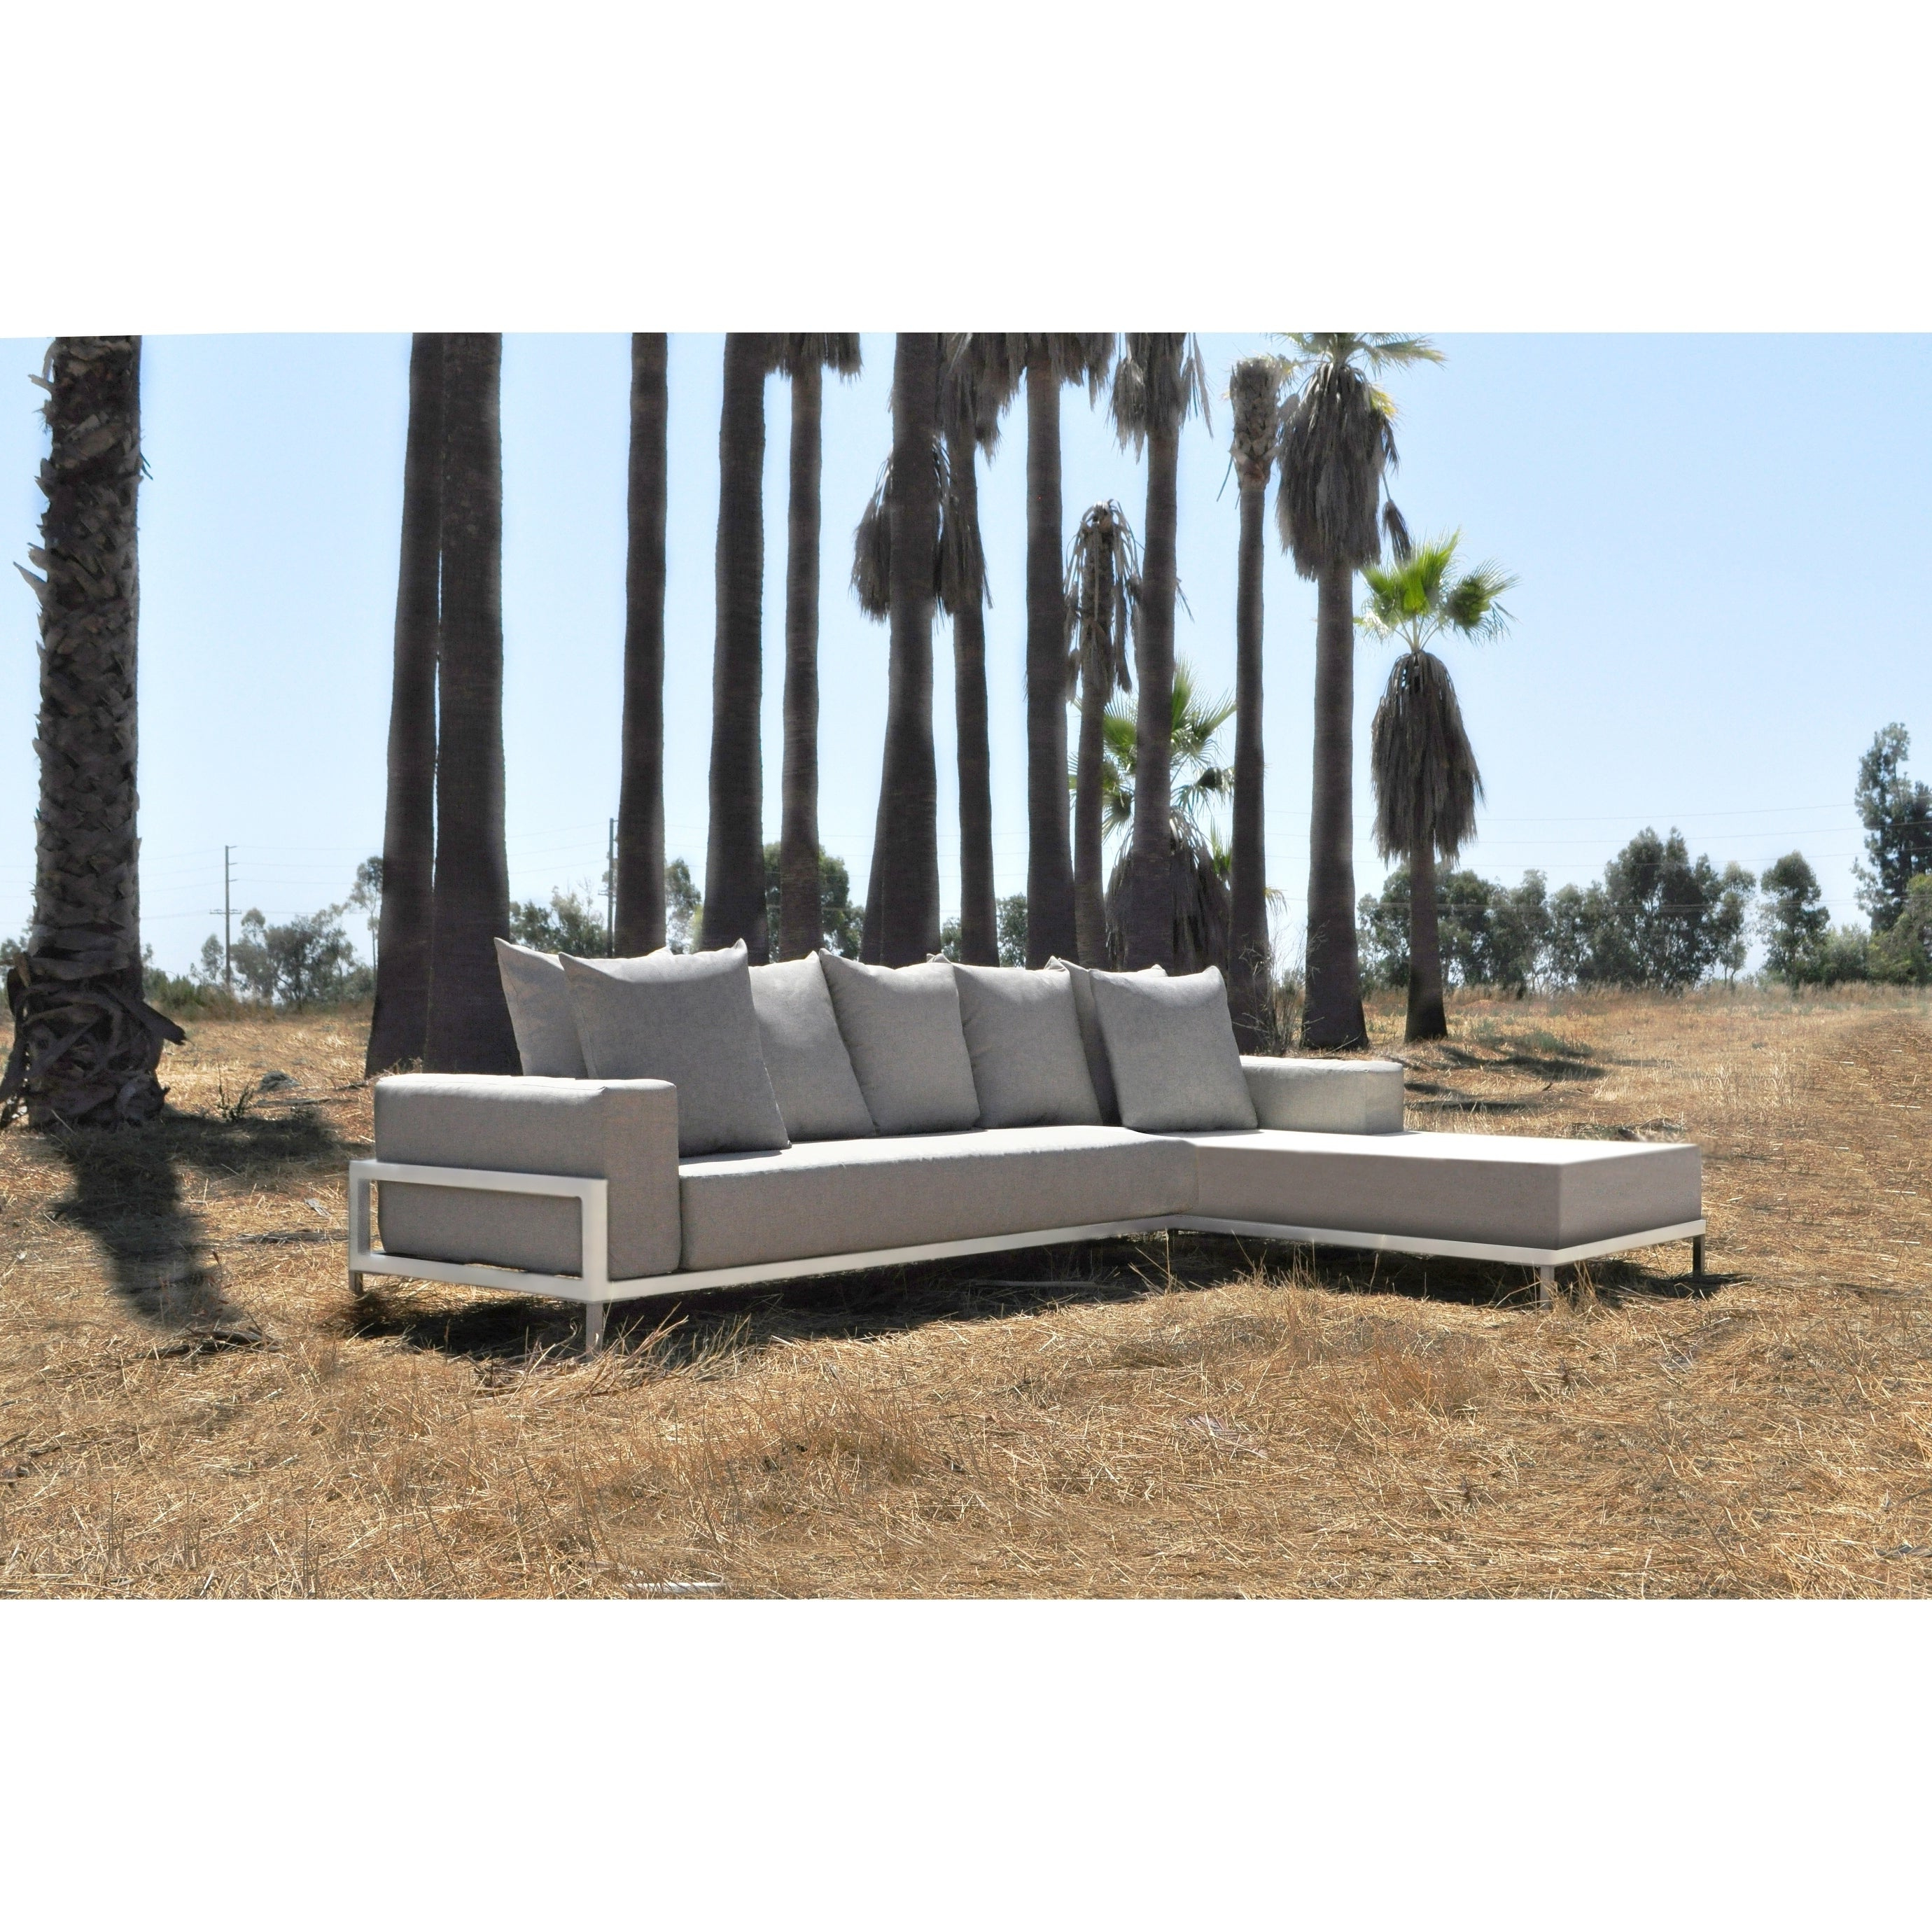 Most Popular Paloma Sectionals With Cushions With Regard To Solis Nubis Sectional Outdoor Deep Seated 2 Piece Patio Set – Textured White Frame, Pebble Cream Cushions (View 18 of 20)